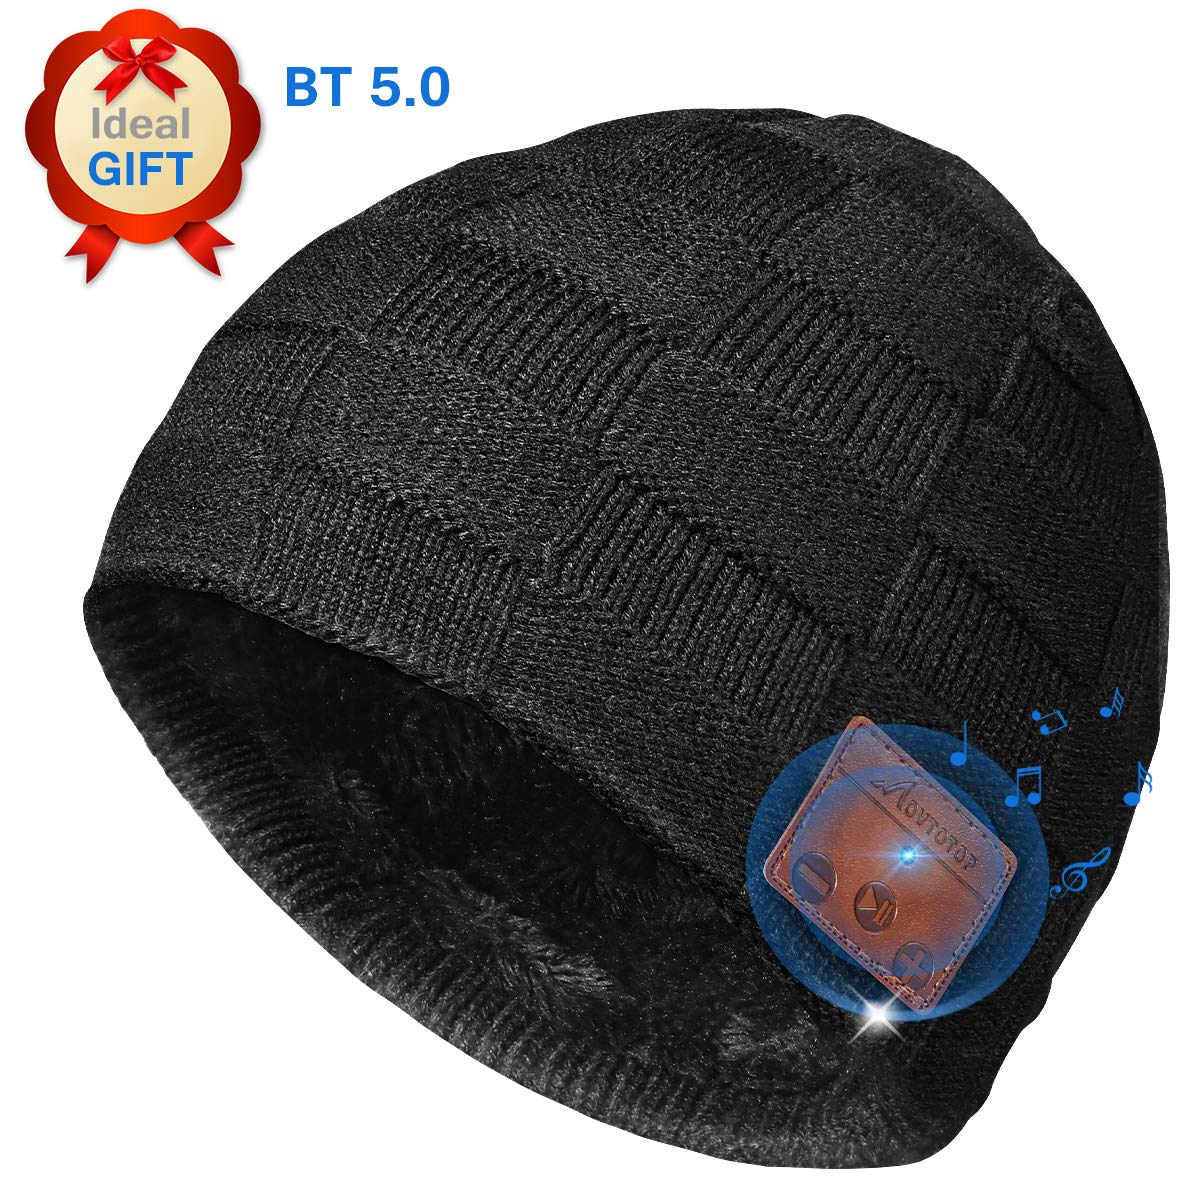 Knit Wireless Hat with Headphones Christmas Electronic Gifts for Men//Women MOVTOTOP Upgraded V5.0 Wireless Beanie Winter Music Bluetooth Hat Built-in Stereo Speaker /& Microphone